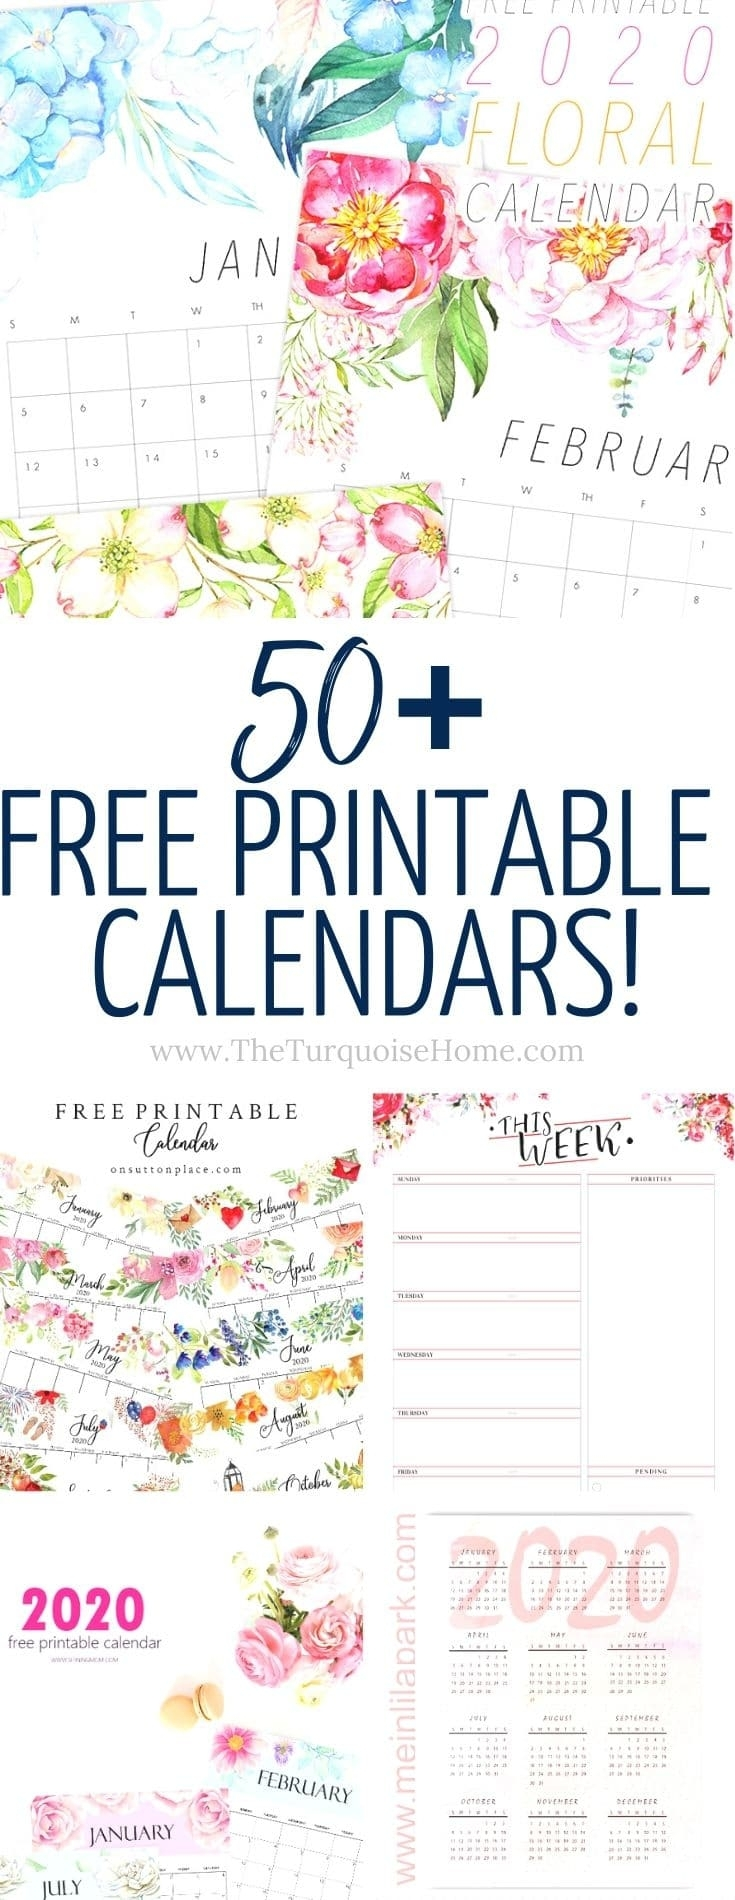 Pick Looking For Free Pocket Sized Yearly Calendars